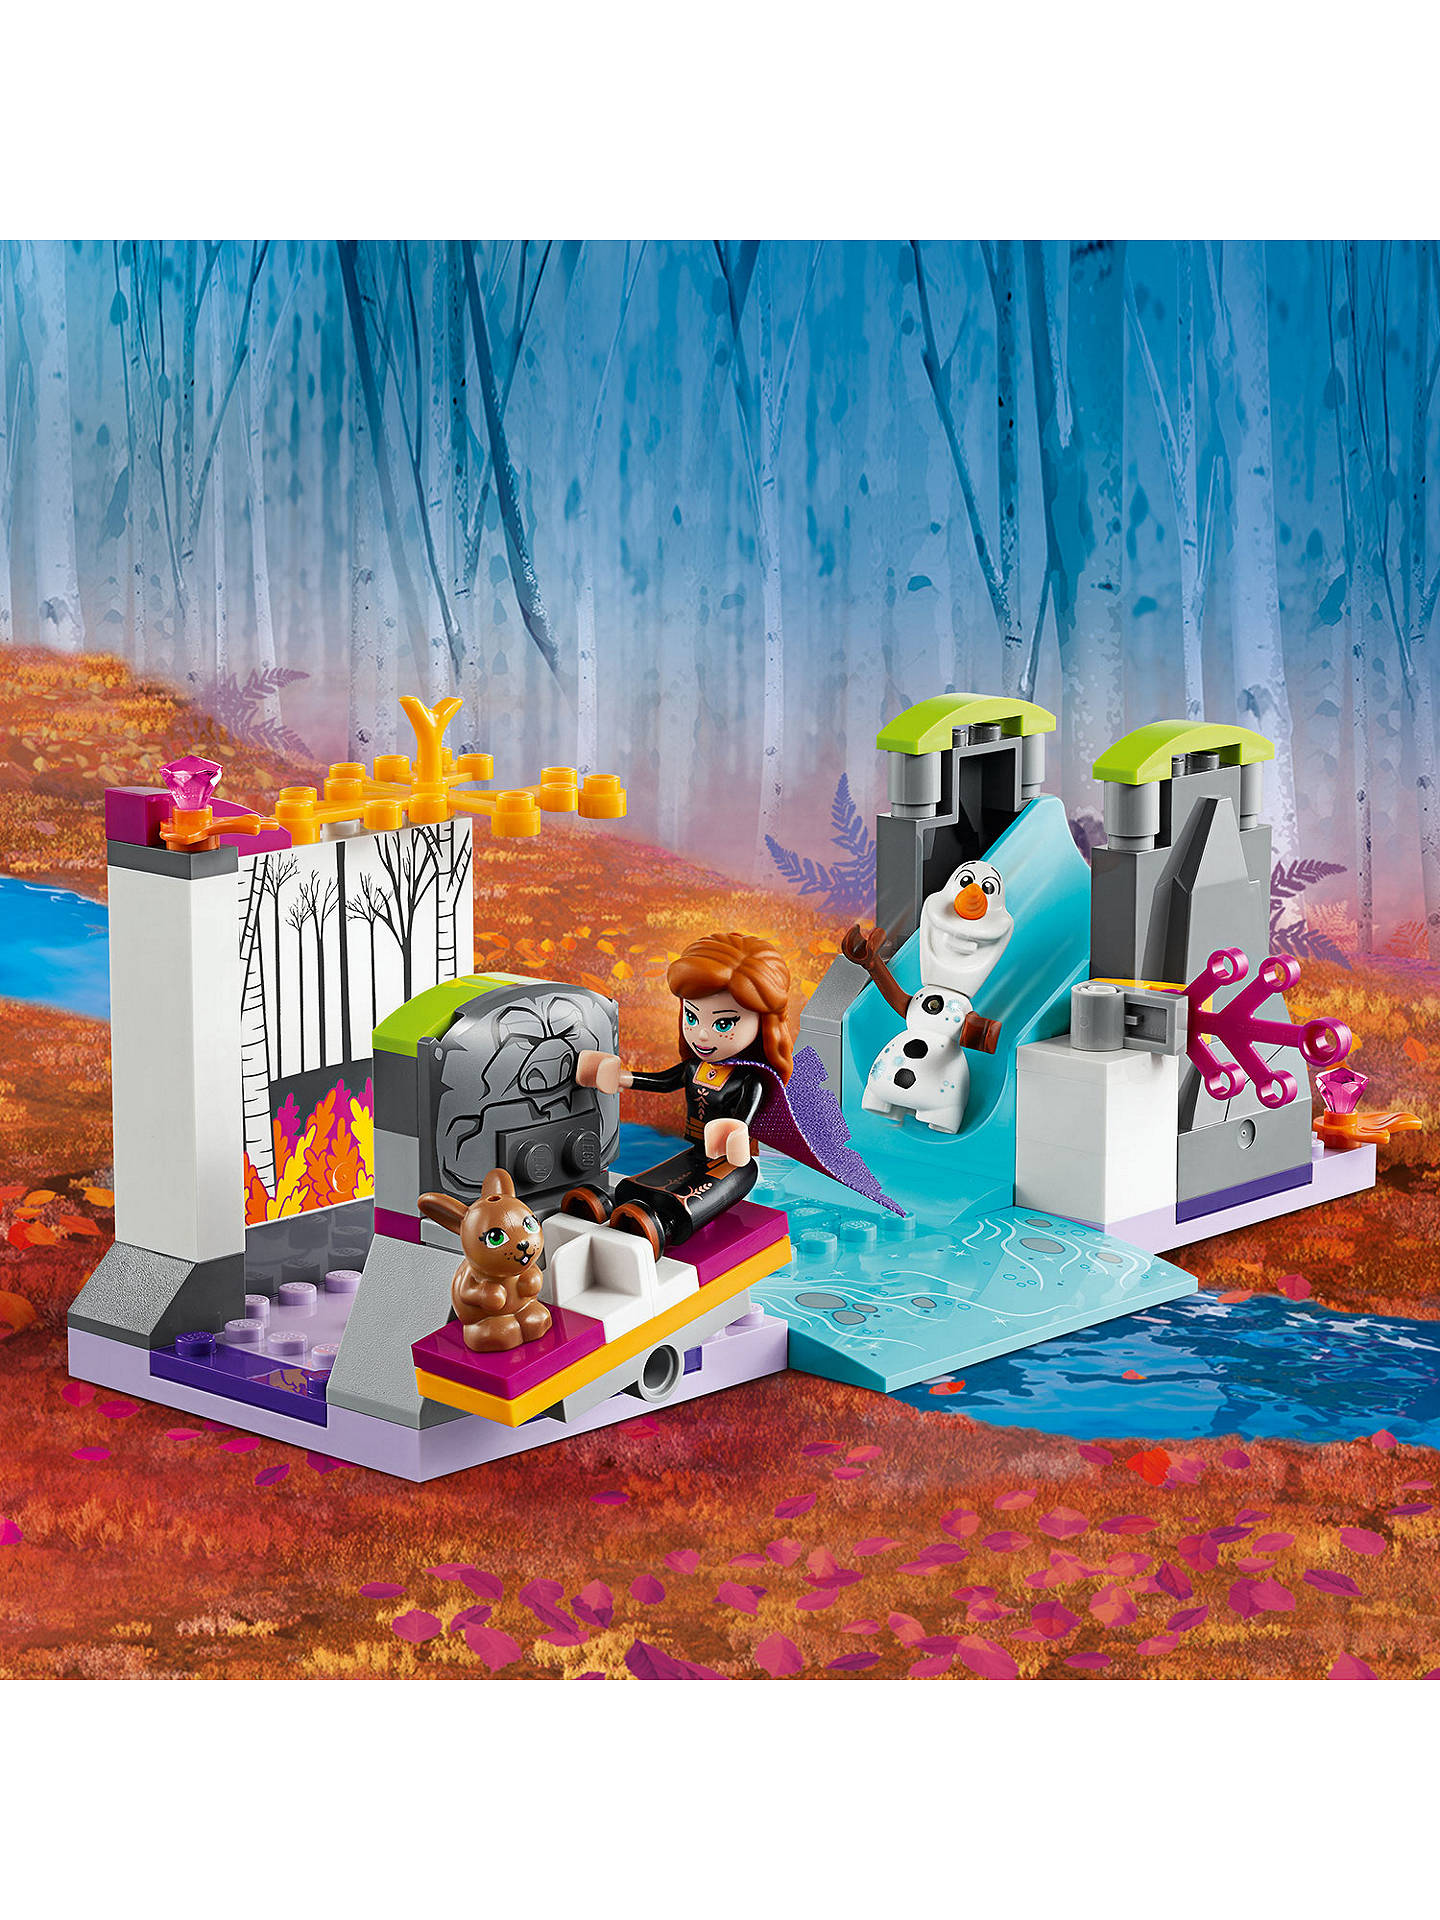 Anna/'s Canoe Expedition Building Set Brand New Disney Frozen 2 Lego